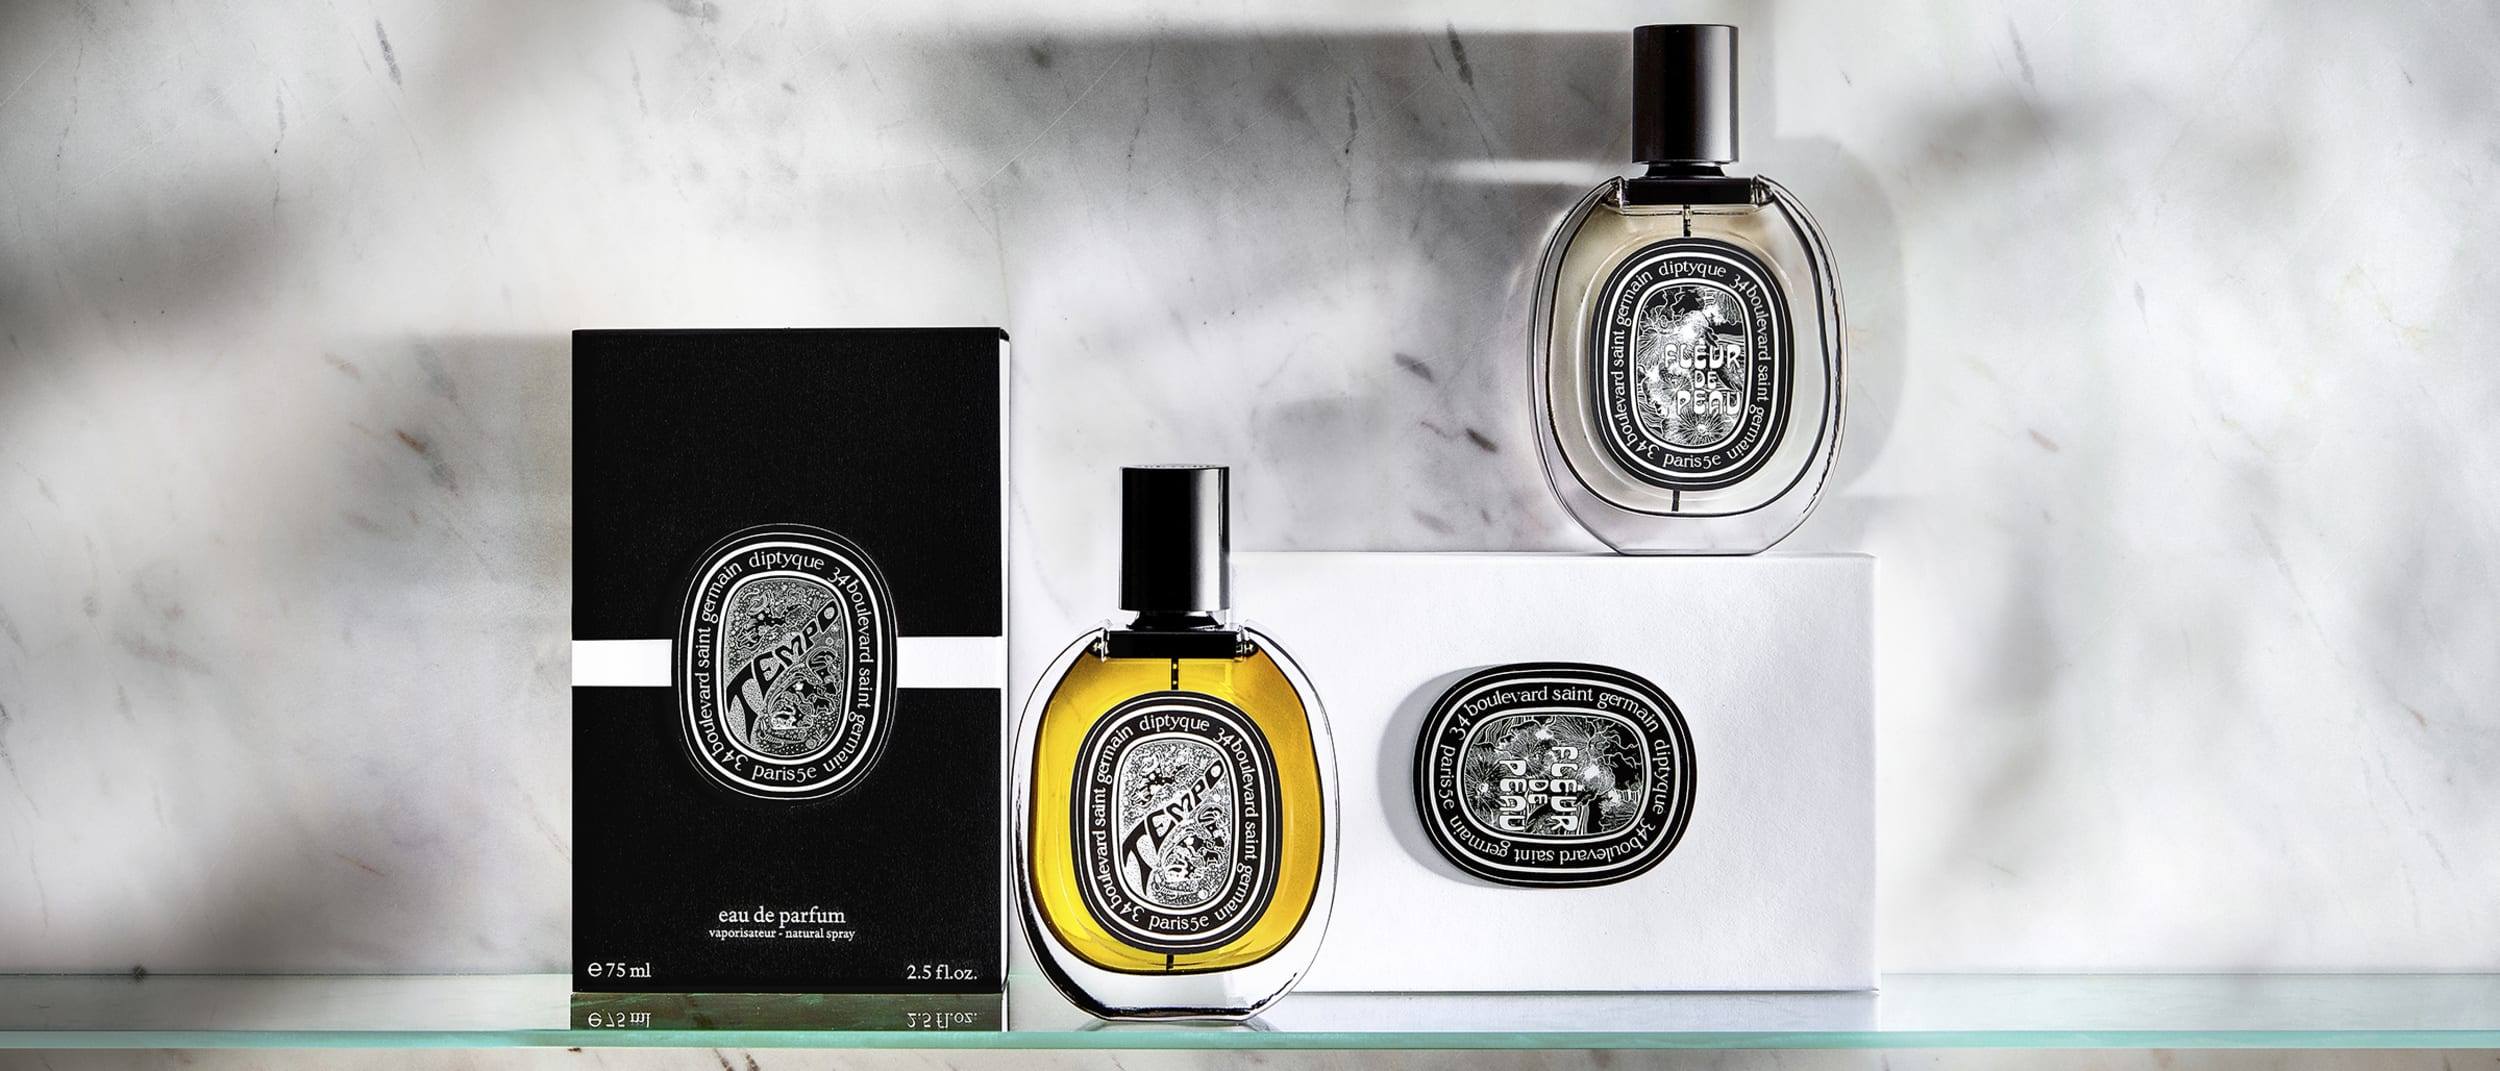 Mecca celebrates 50 years of diptyque fragrance